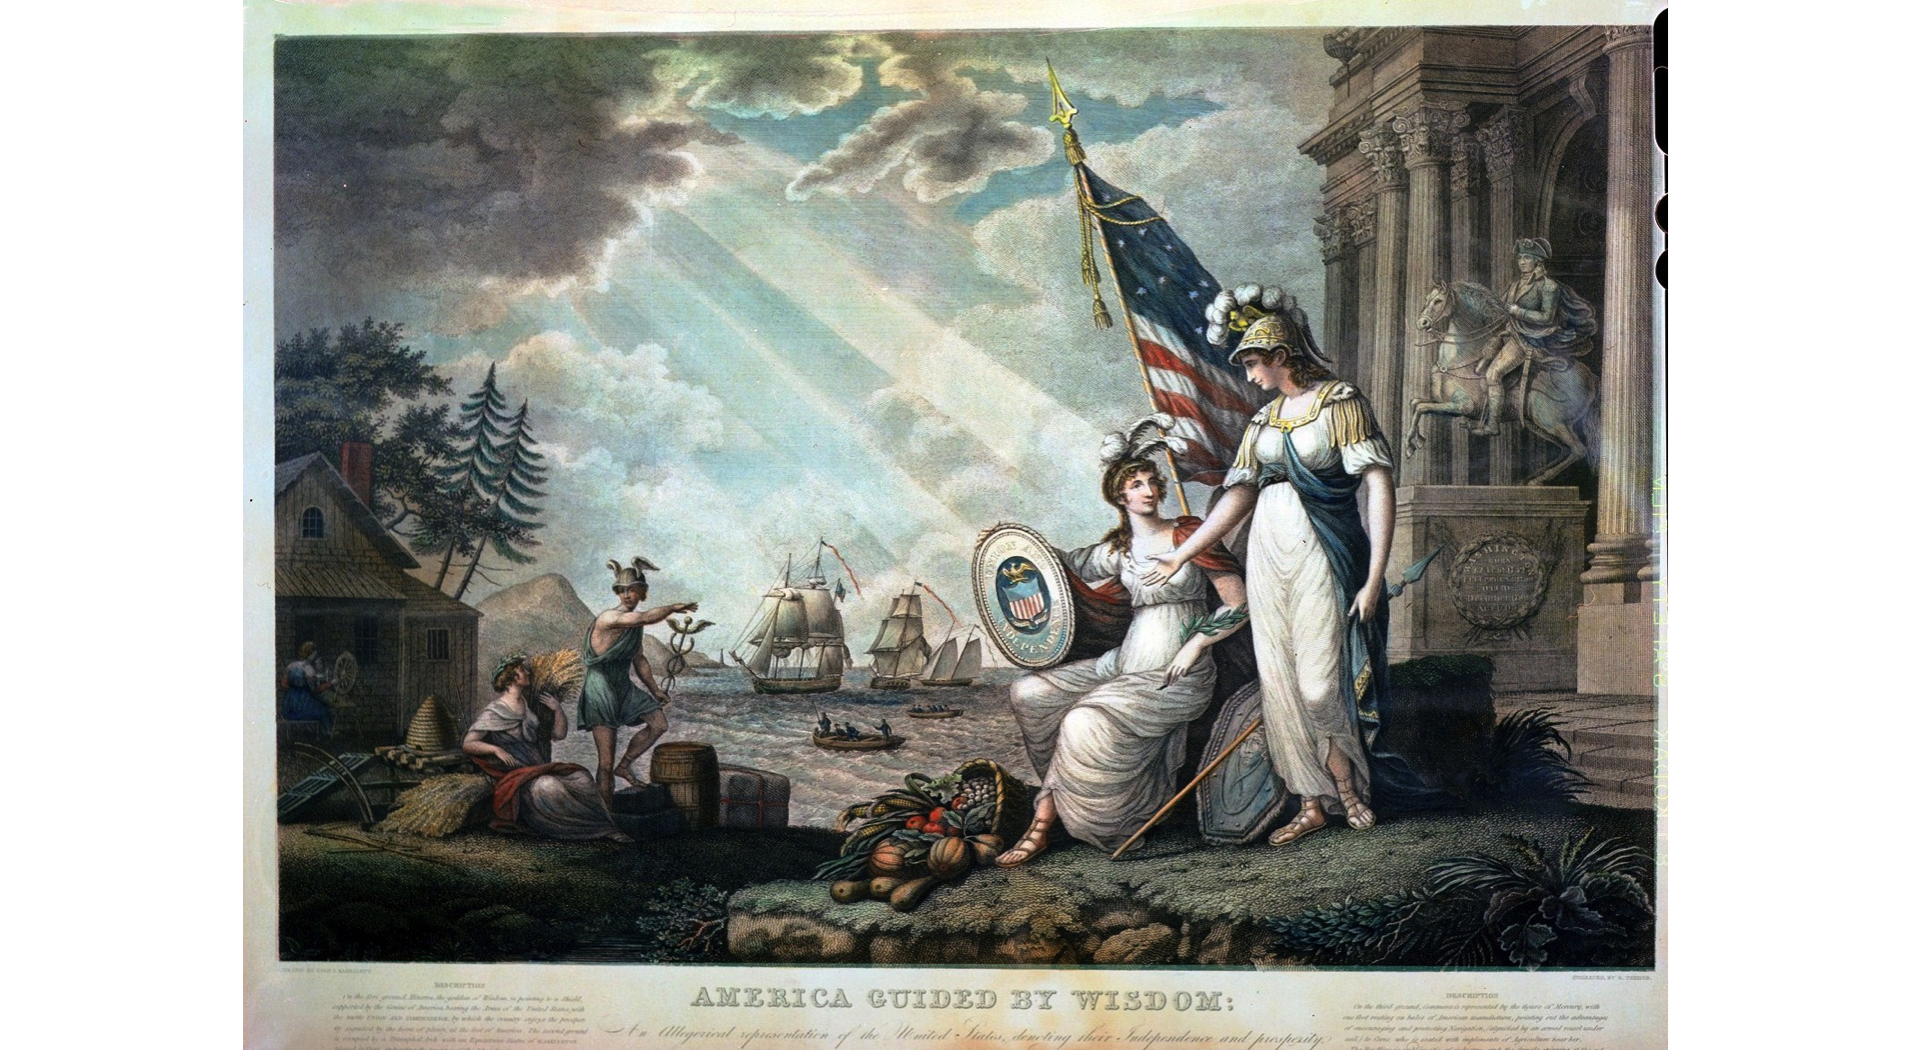 America Guided by Wisdom, John J. Barralet (1820)